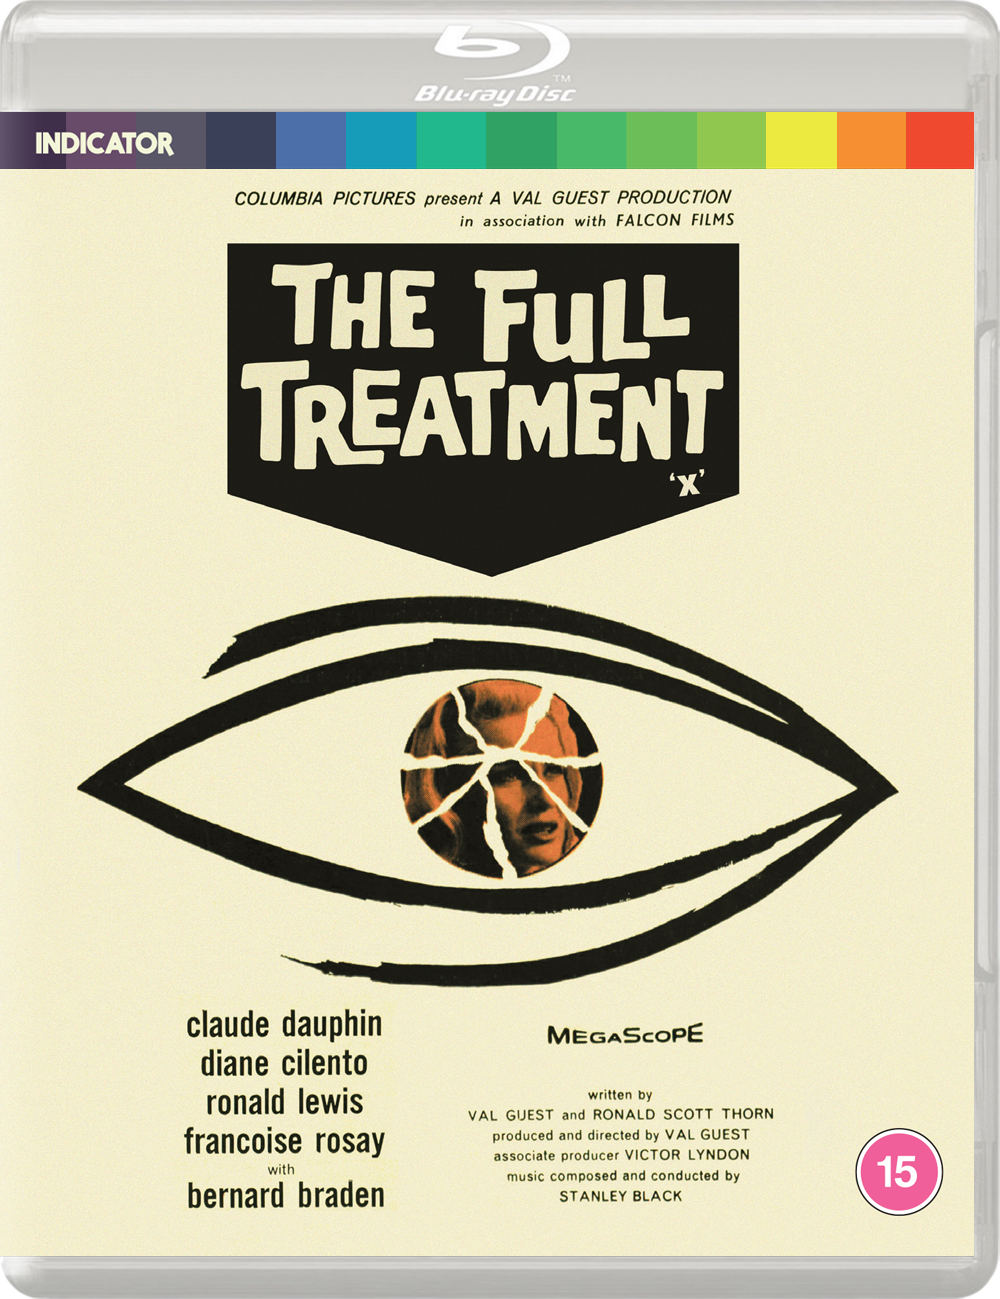 THE FULL TREATMENT - BD